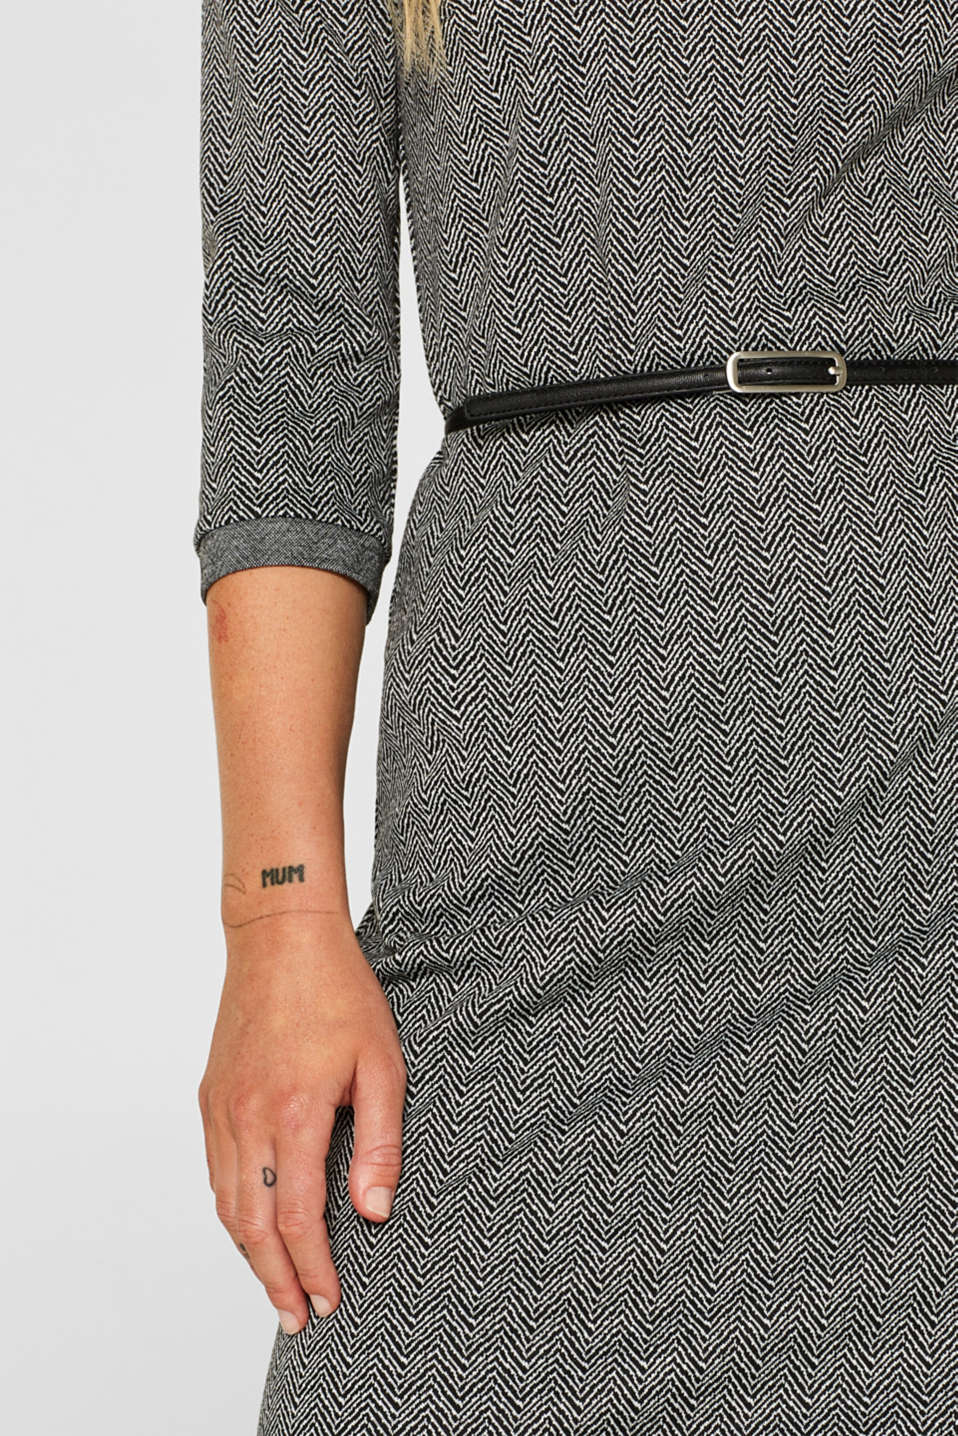 Stretch jersey sheath dress with belt, ANTHRACITE, detail image number 2